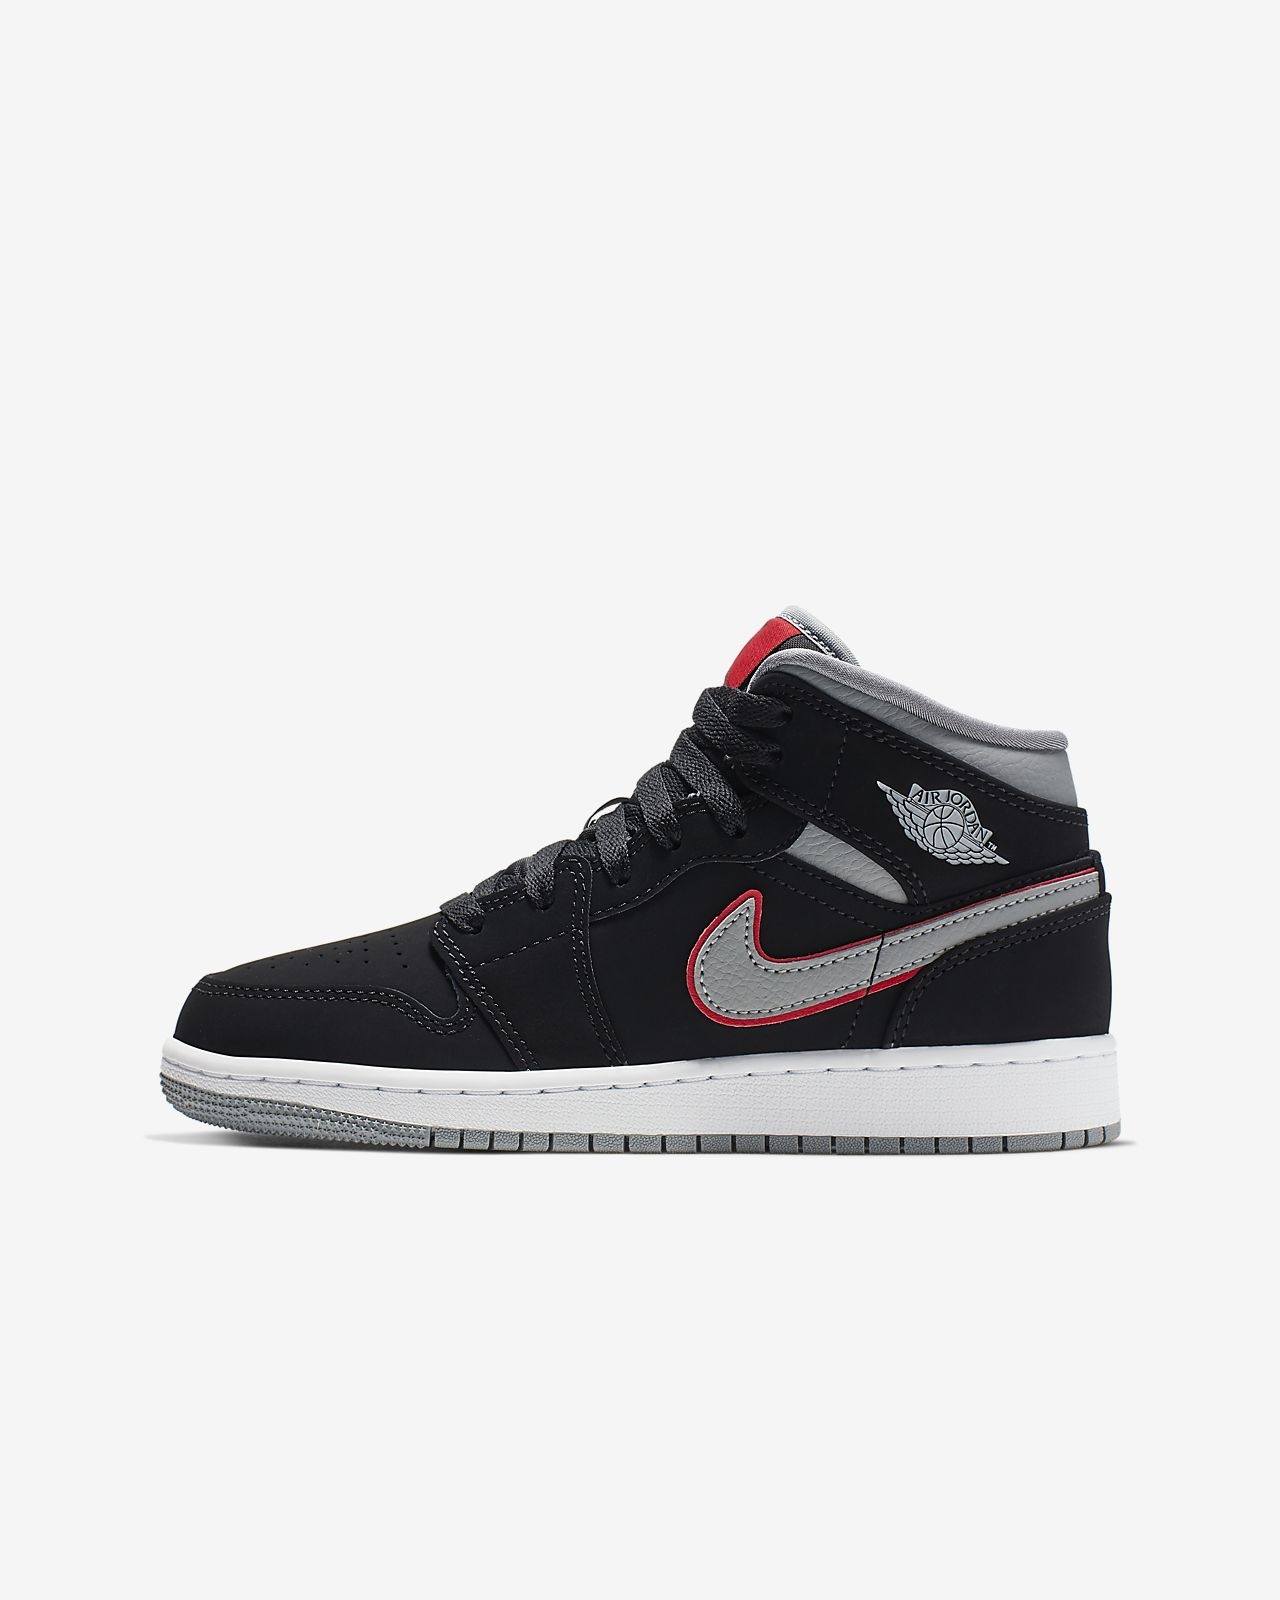 3c206cb05dbc88 Air Jordan 1 Mid Big Kids  Shoe. Nike.com